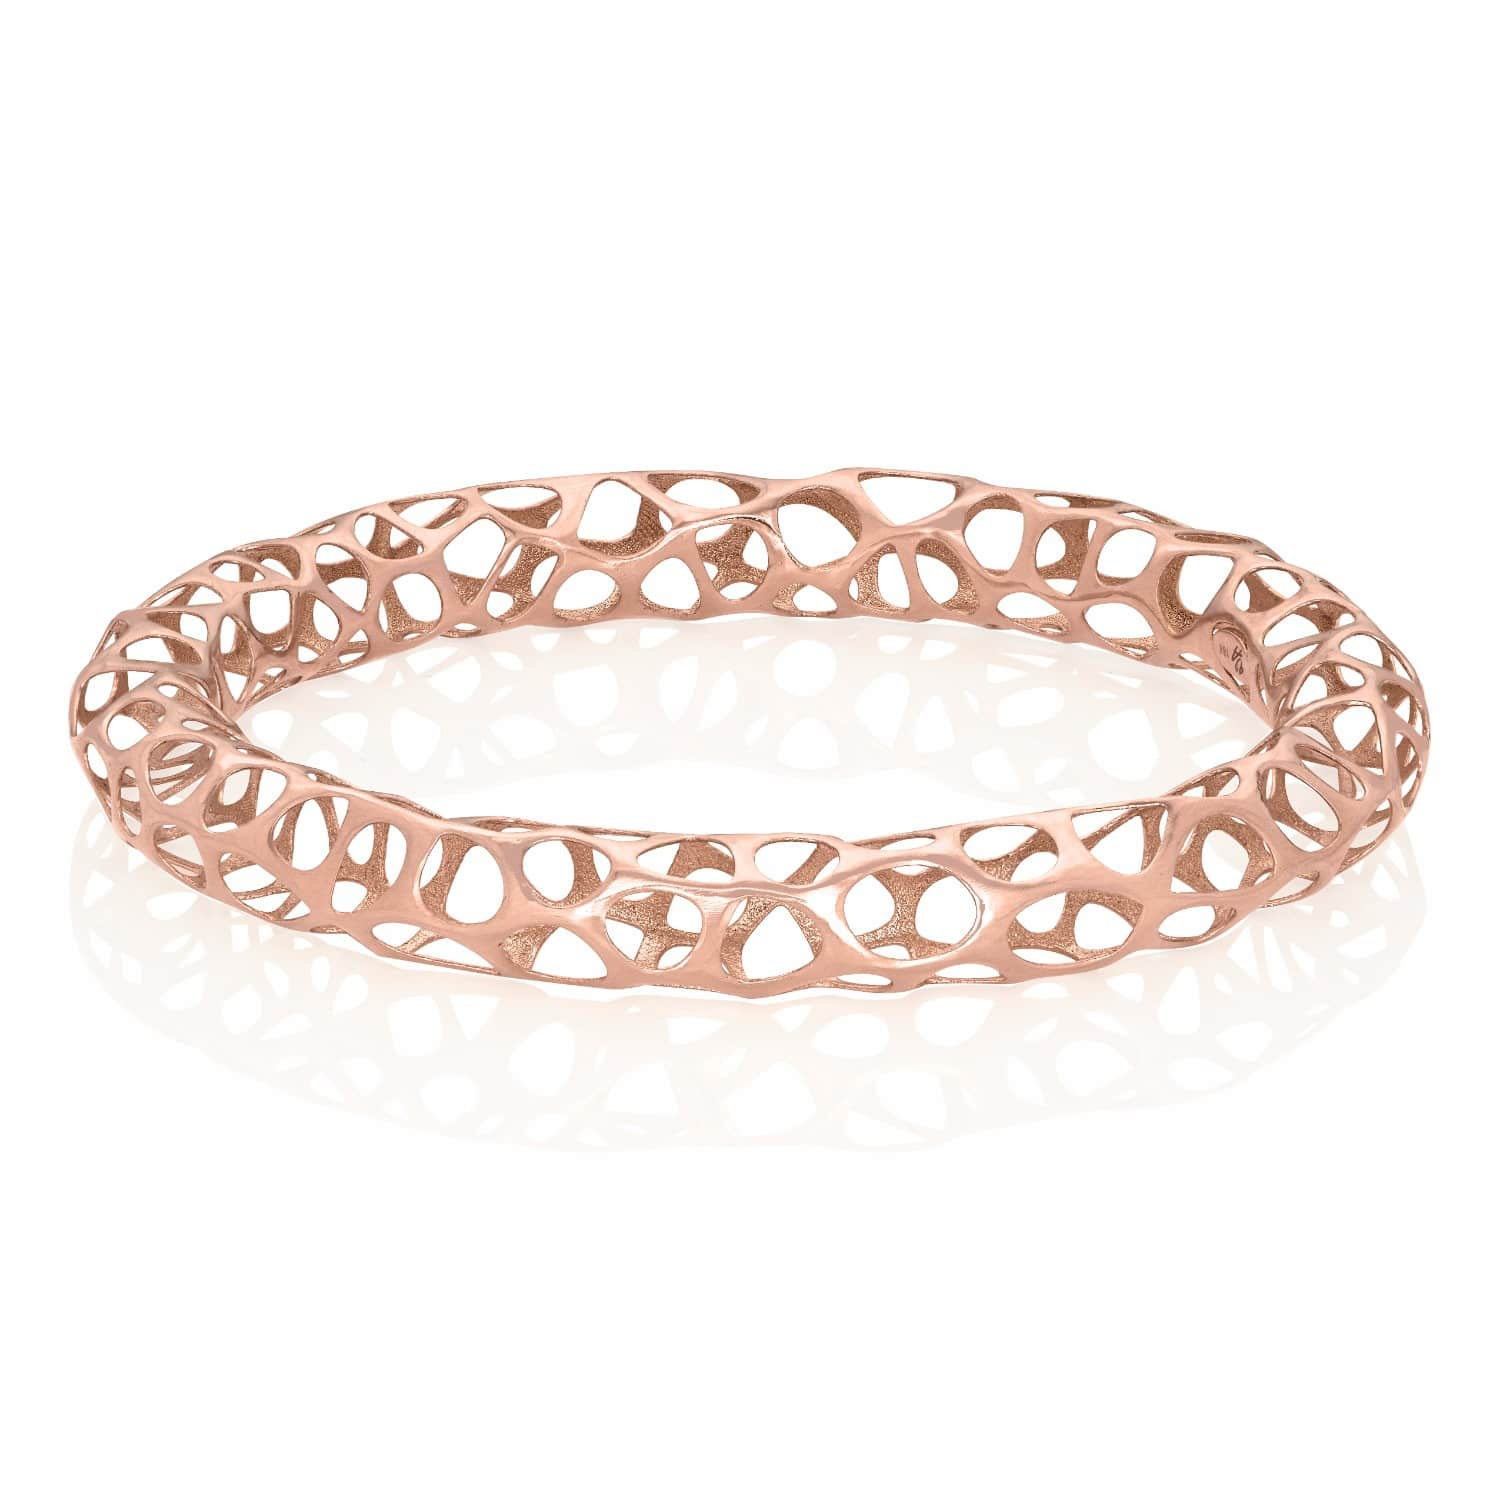 lace rose gold bangle 18K for ladies